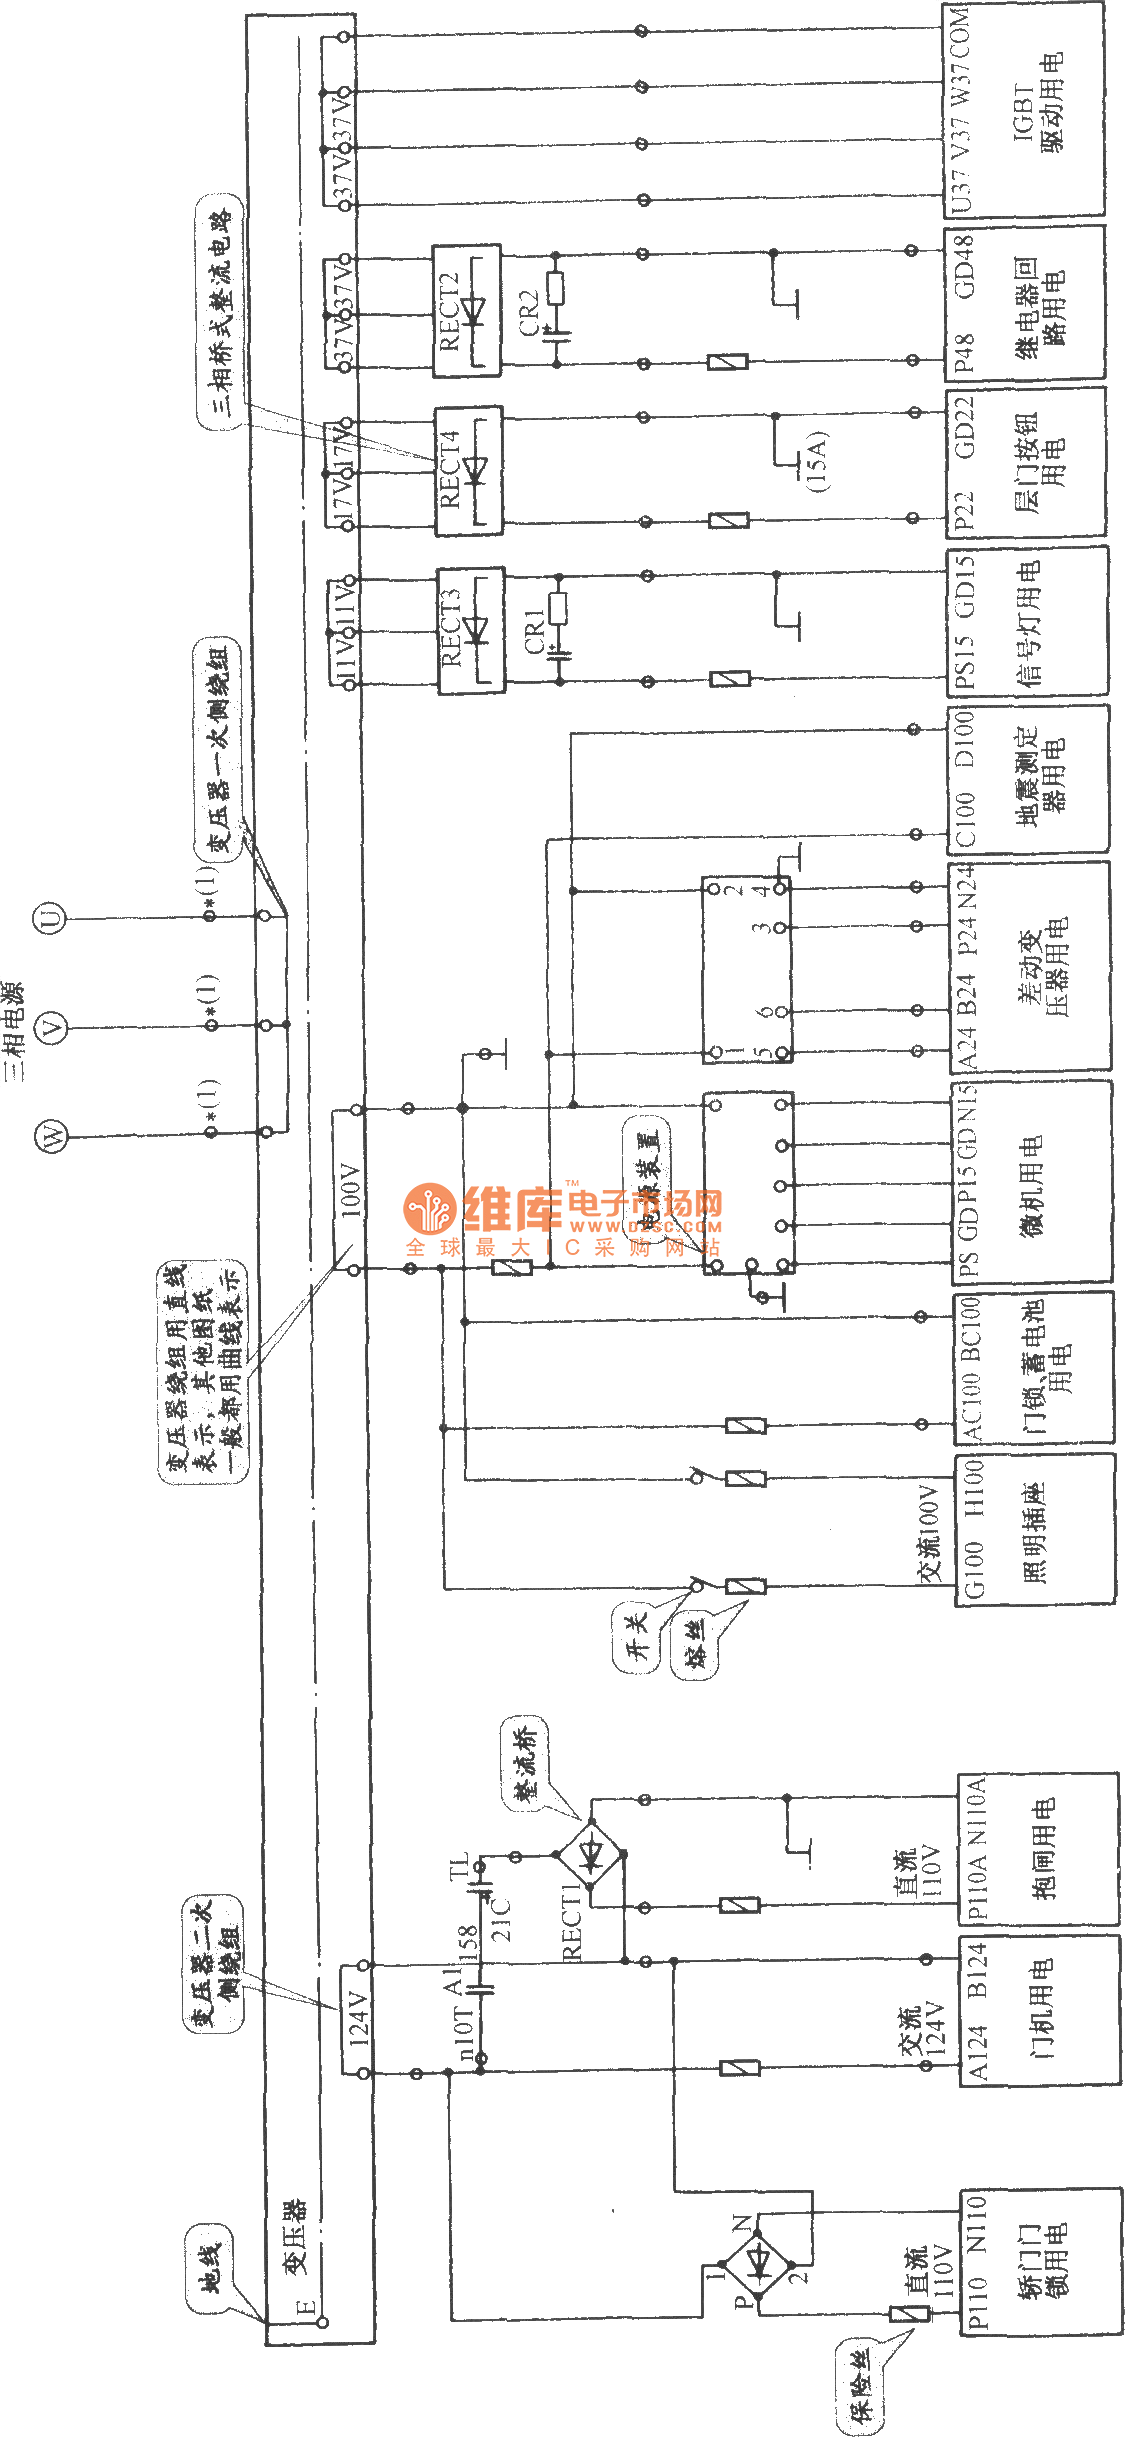 Hitachi Vfmg Elevator Control Power Circuit